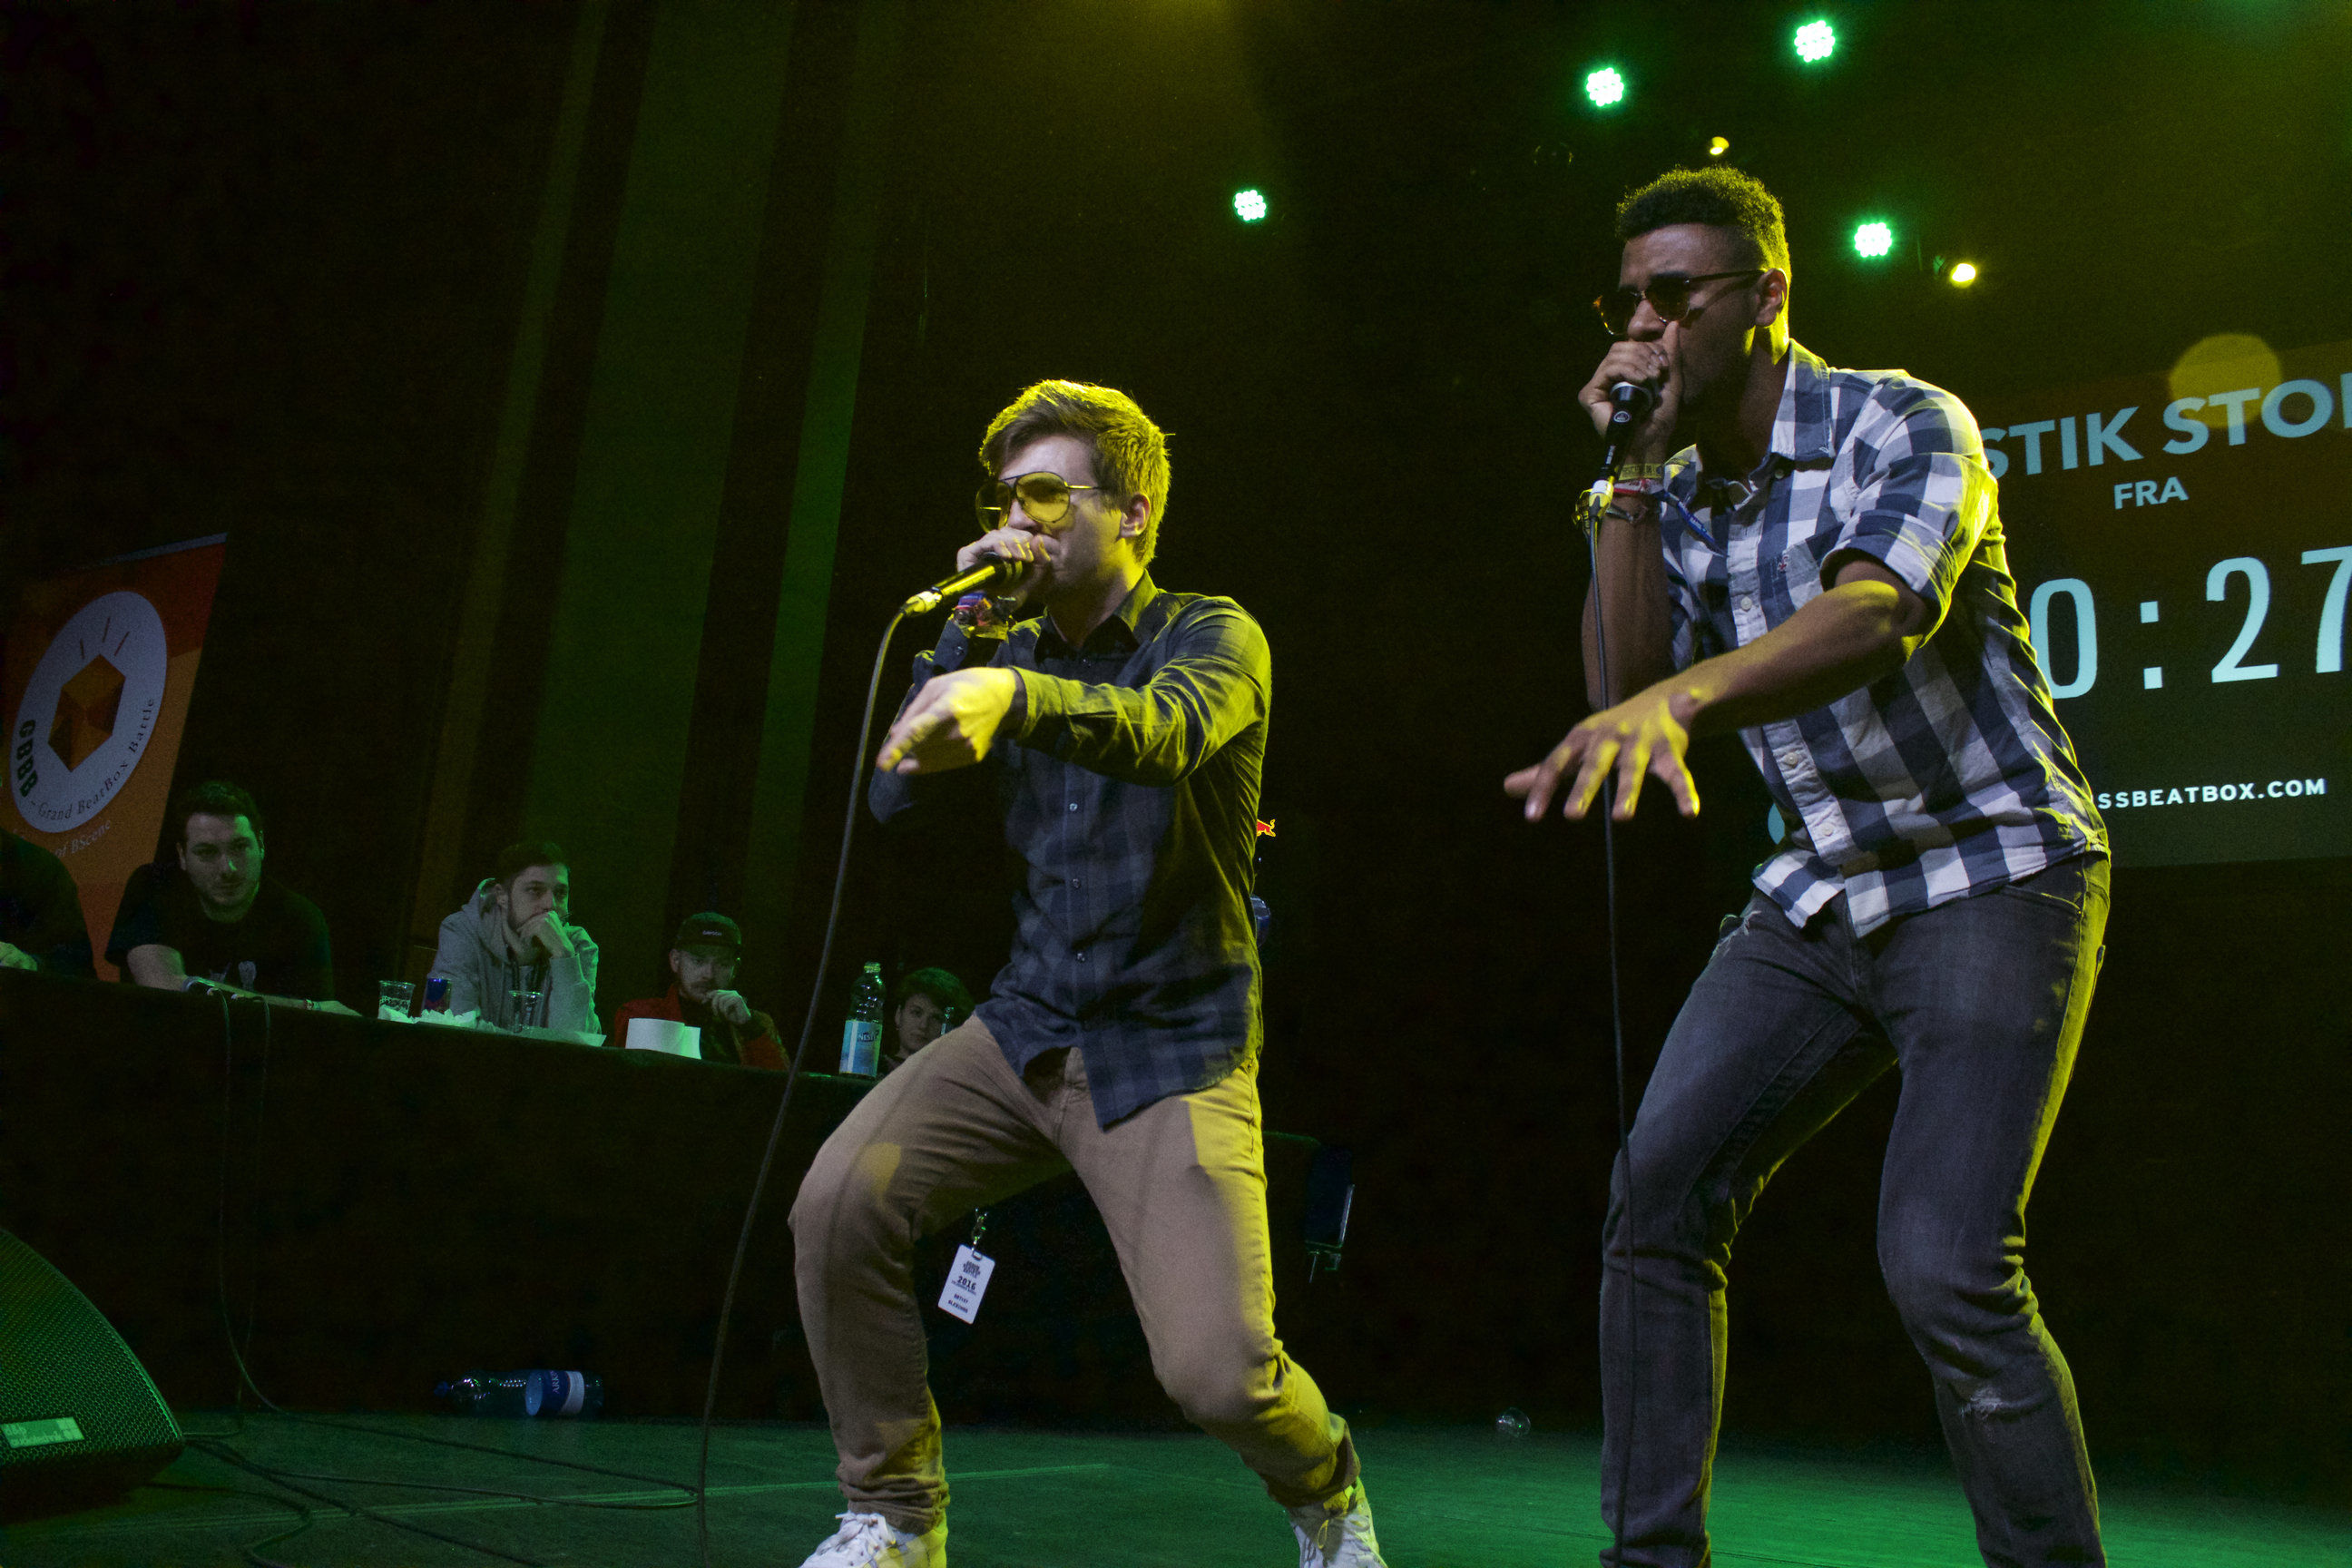 Alexinho and Efaybee at the 2016 Grand Beatbox Battle.